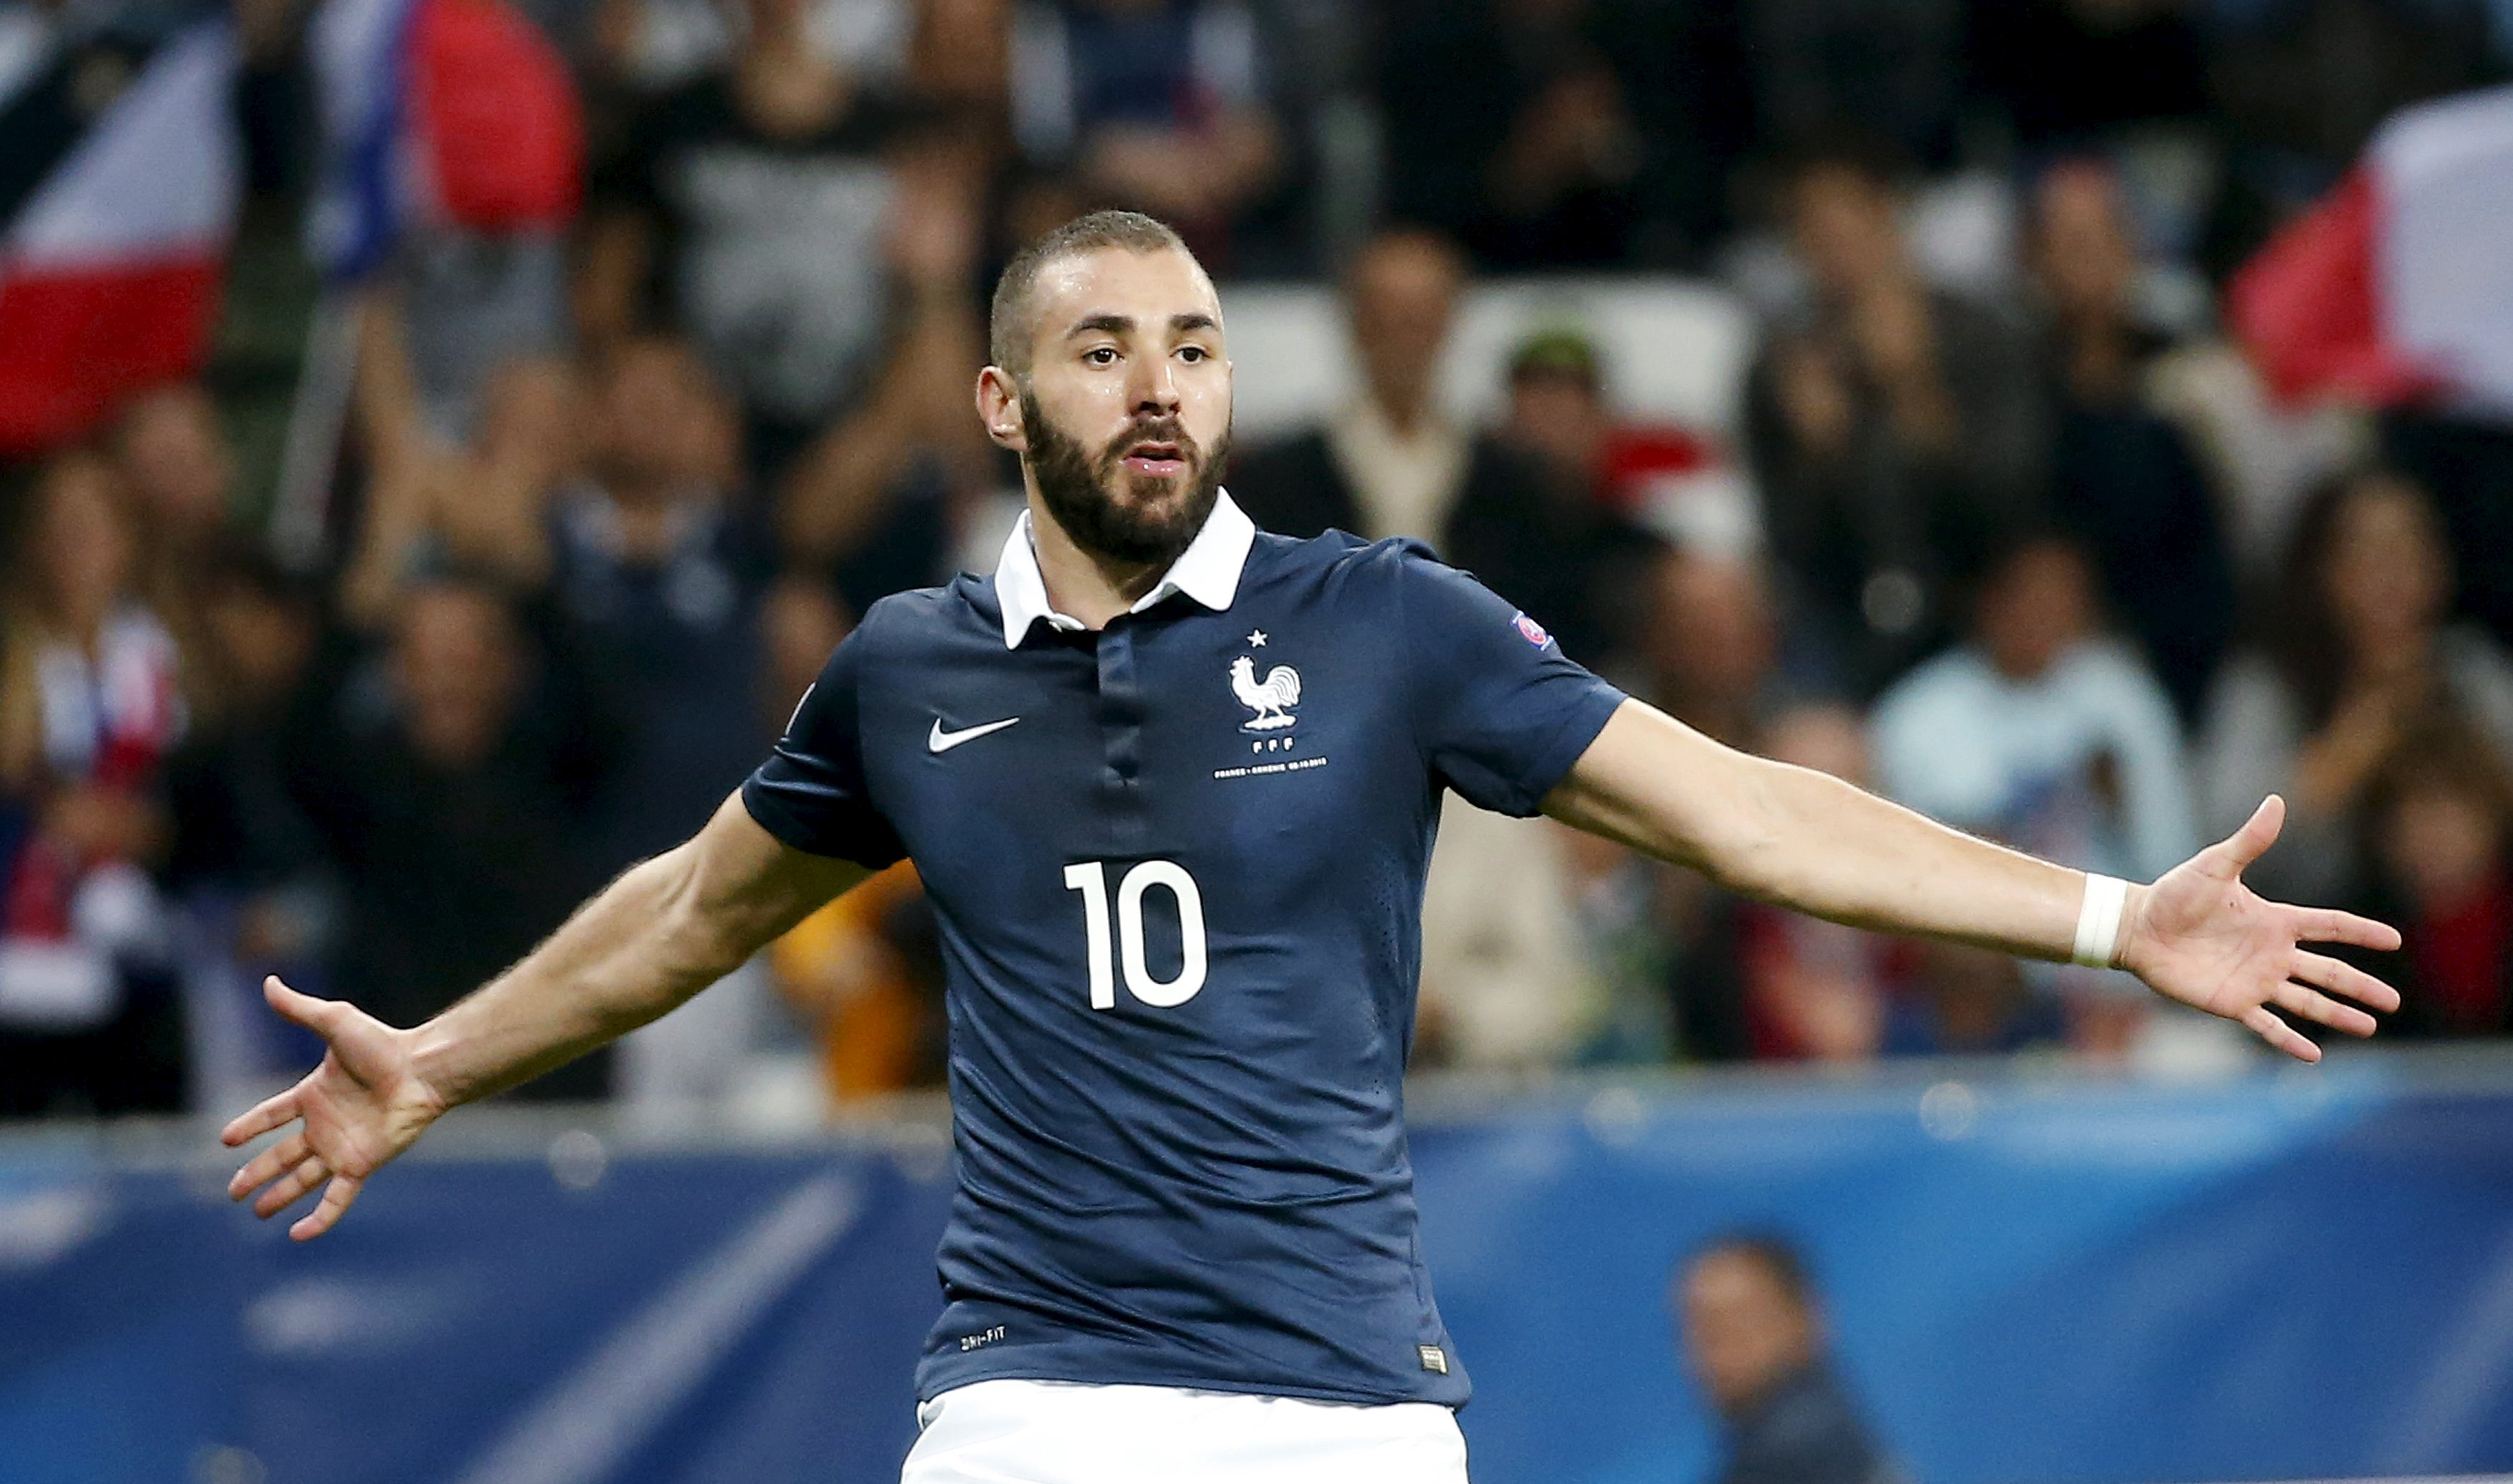 France's Karim Benzema celebrates after scoring during their friendly soccer match against Armenia at Allianz Riviera stadium in Nice, France, October 8, 2015. REUTERS/Eric Gaillard